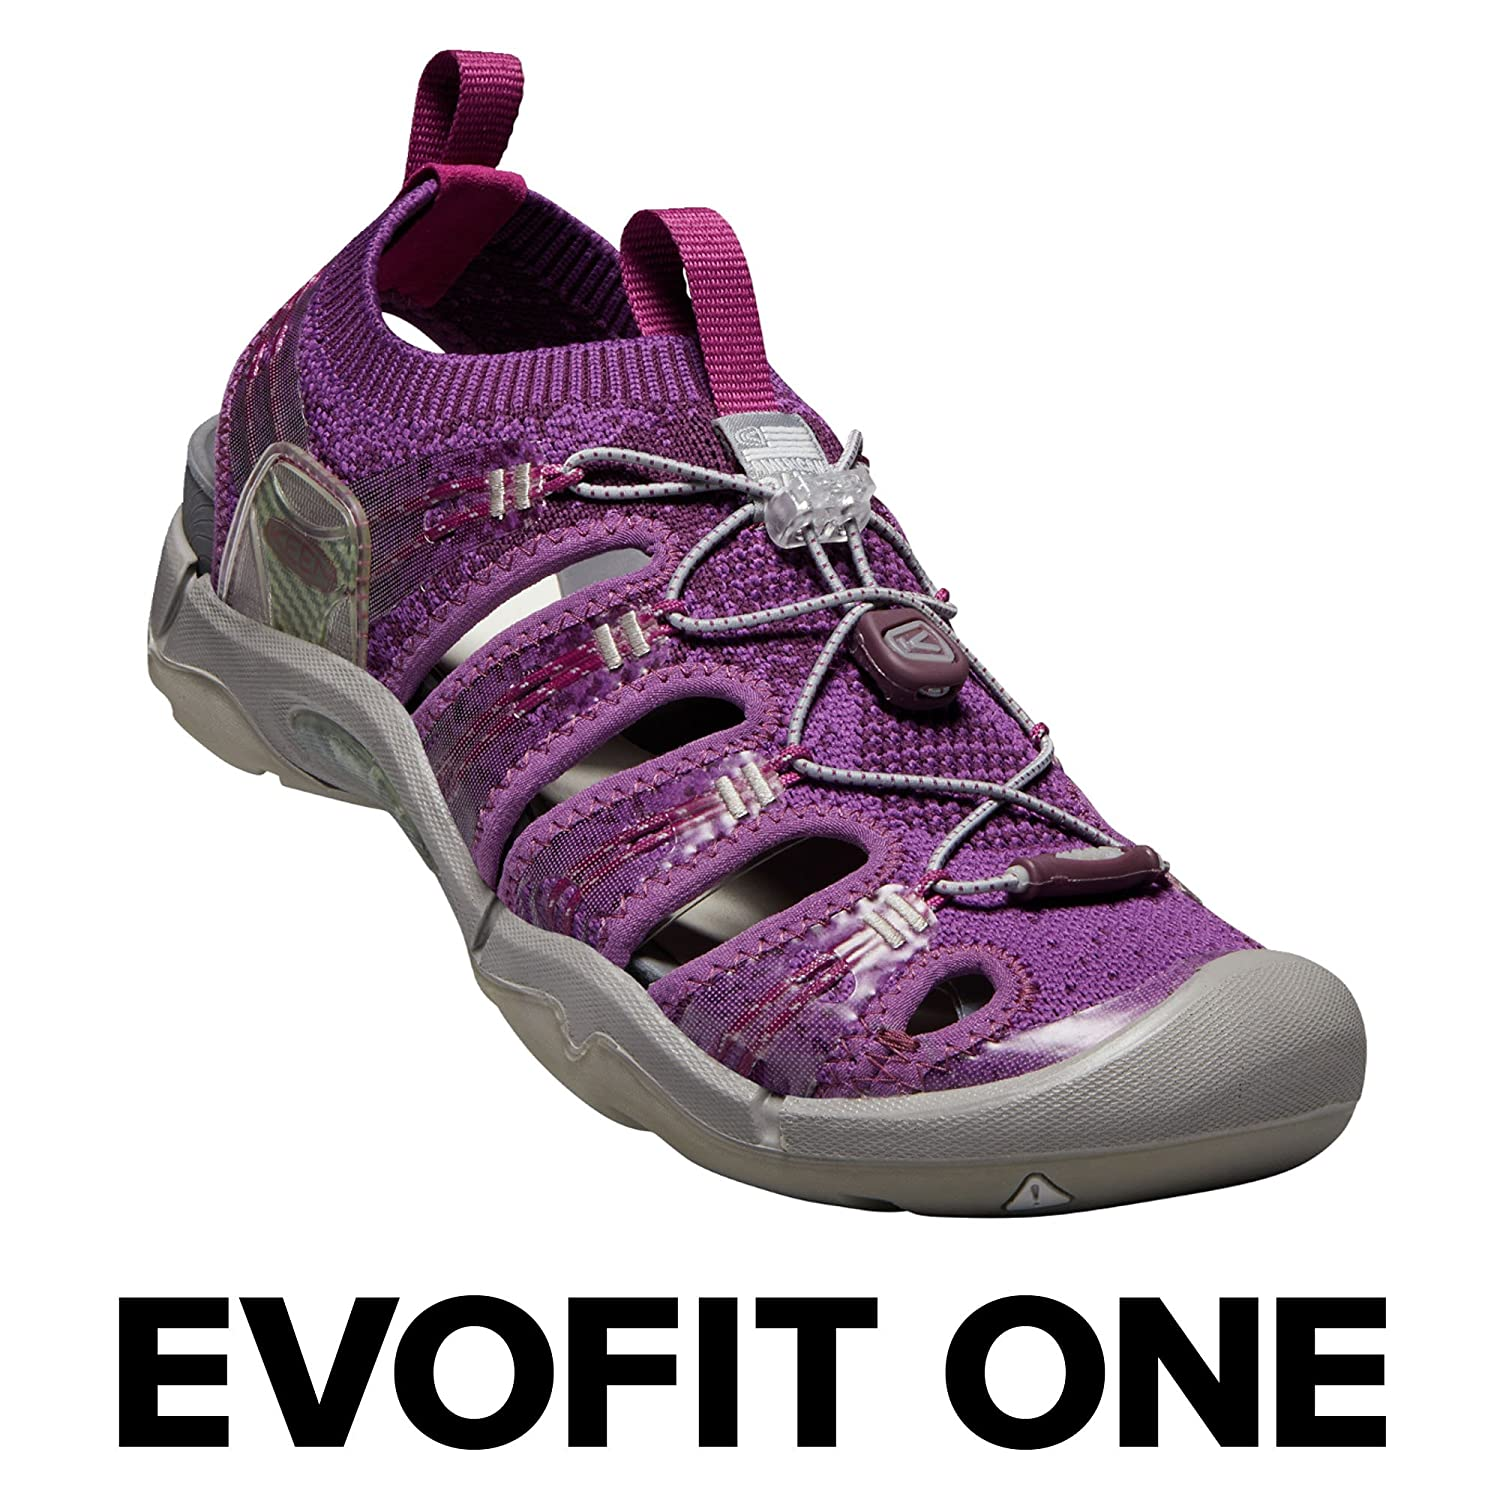 KEEN Women's EVOFIT ONE Water Sandal for Outdoor Adventures B071Y5G4ZF 7 M US|Grape Kiss/Grape Wine